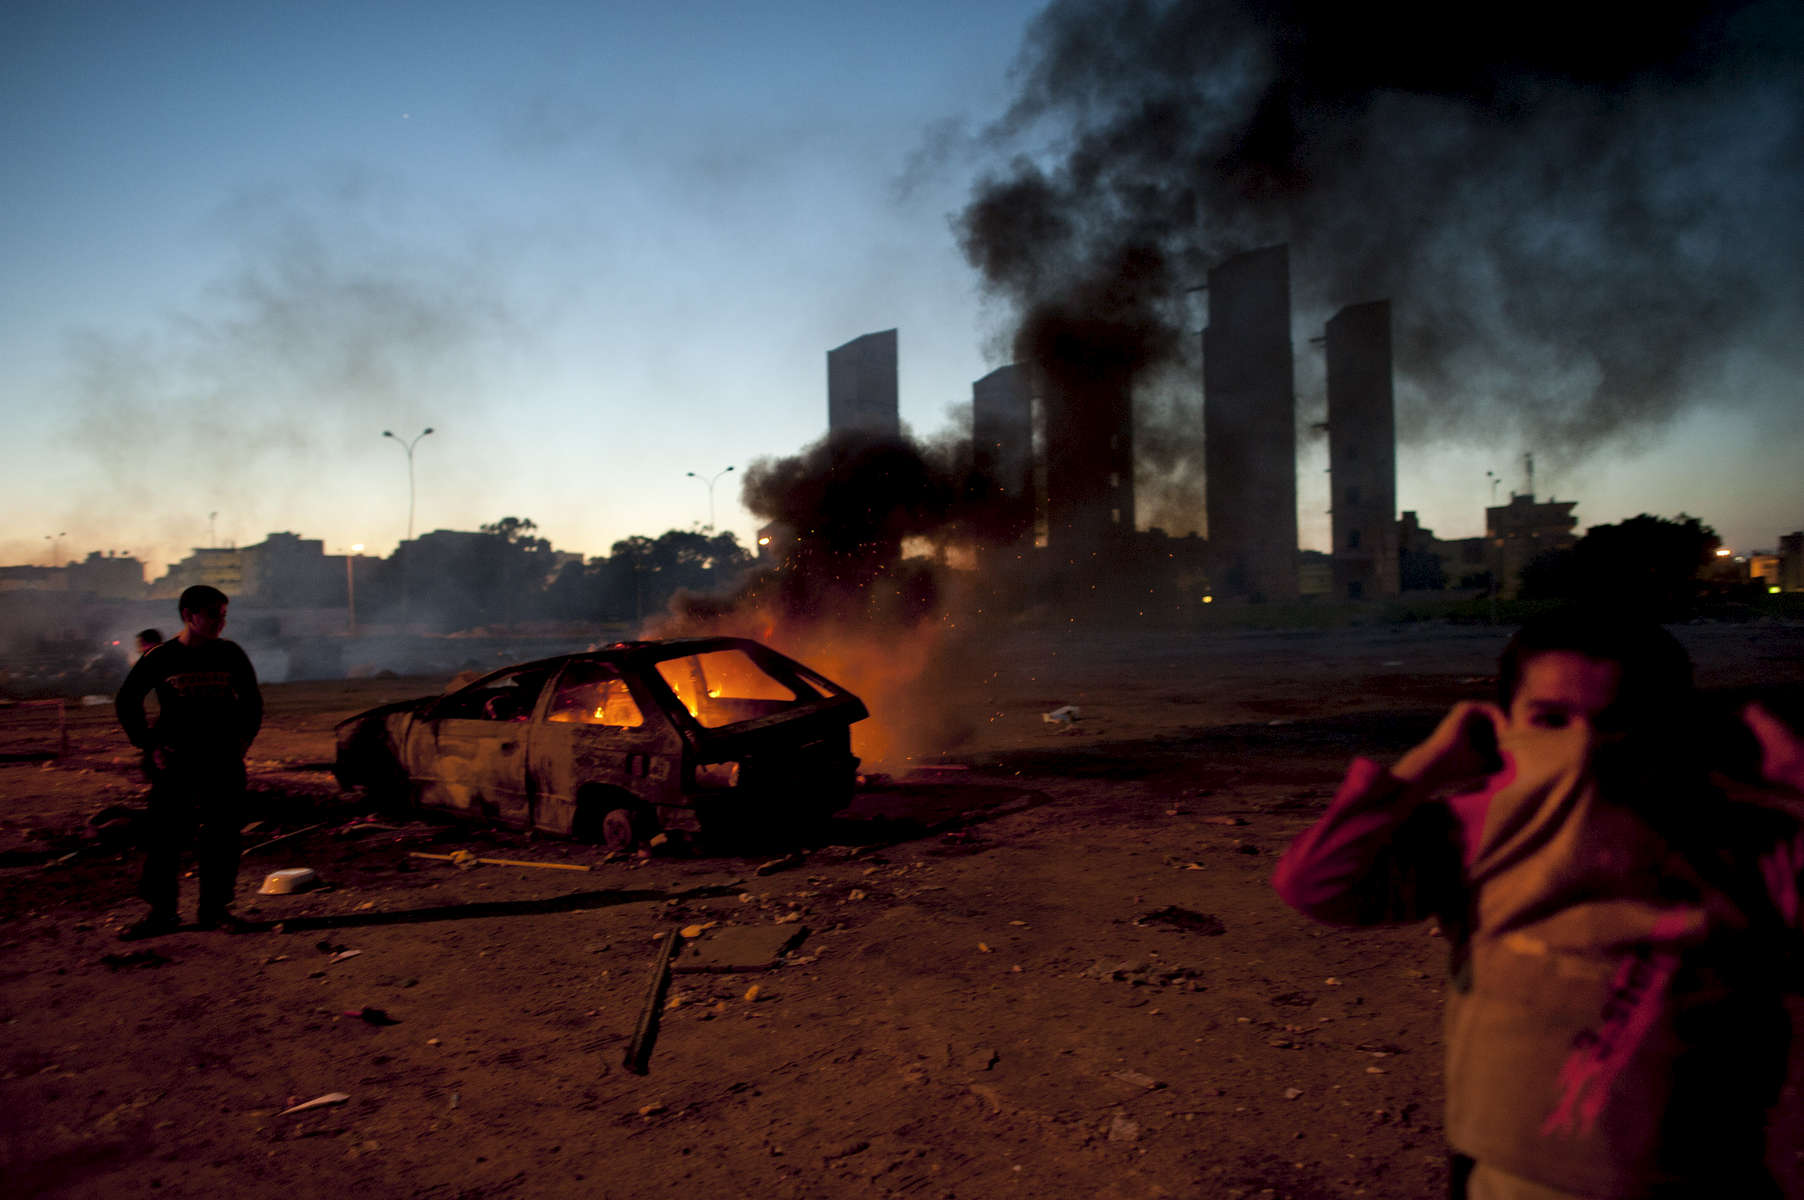 Kids play around a burning car in a residential neighborhood in Benghazi, in Eastern Libya, February 28, 2011. Dangerous confrontations have been going on between opposition forces and those loyal to Col. Qaddafi across Libya.  (Credit: Lynsey Addario for The New York Times)